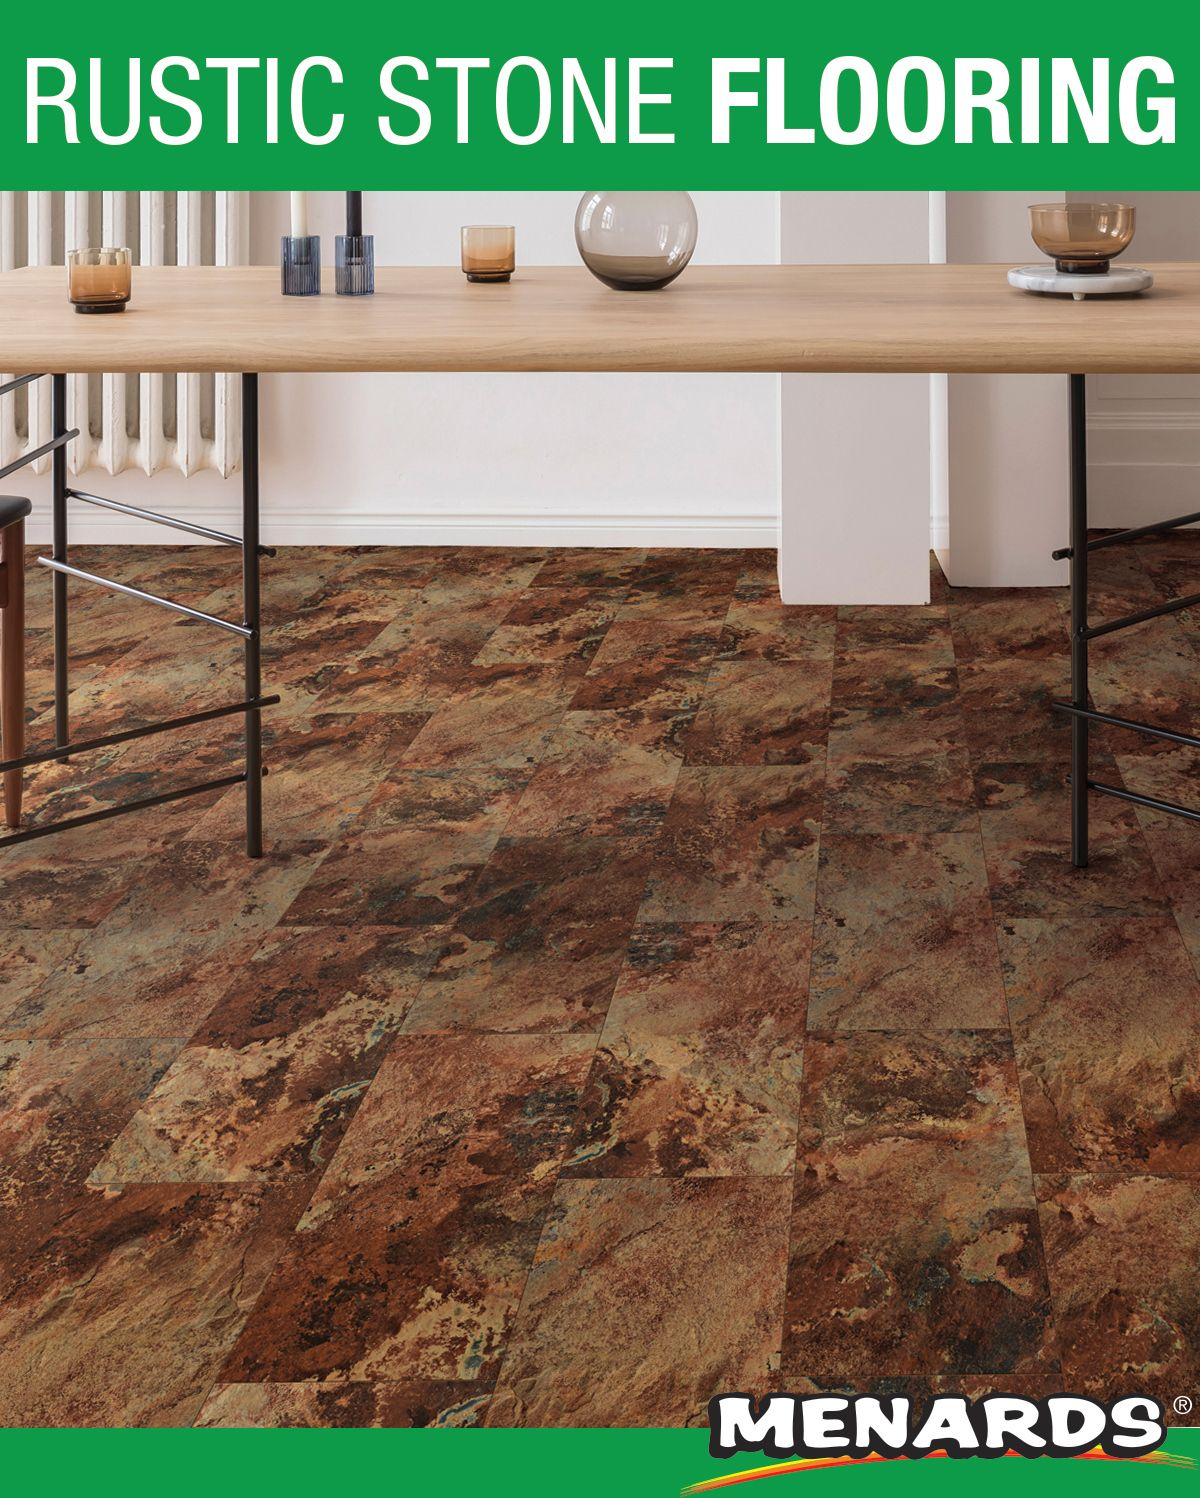 Great Lakes Floors Quest Vinyl Plank Flooring Is An Extremely Dense And Durable Product That Is Perfect For An Rustic Stone Stone Flooring Vinyl Plank Flooring